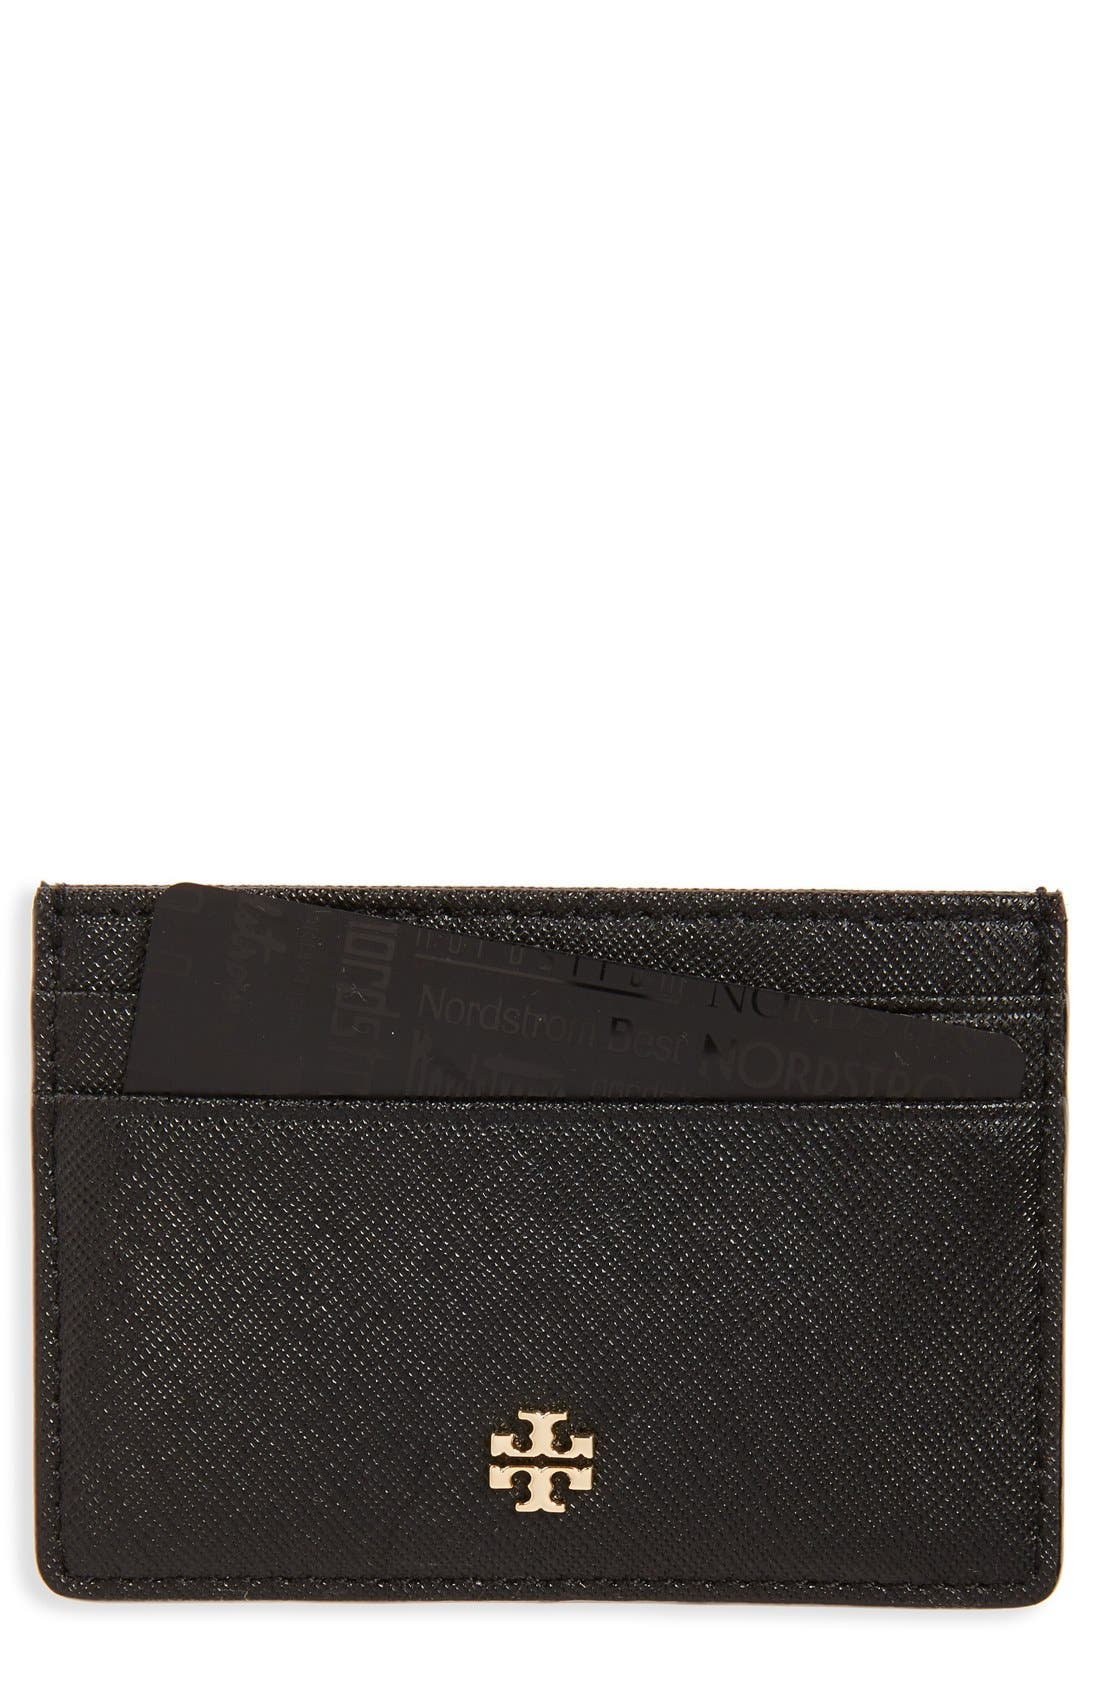 'Robinson' Slim Saffiano Leather Card Case,                             Main thumbnail 1, color,                             001